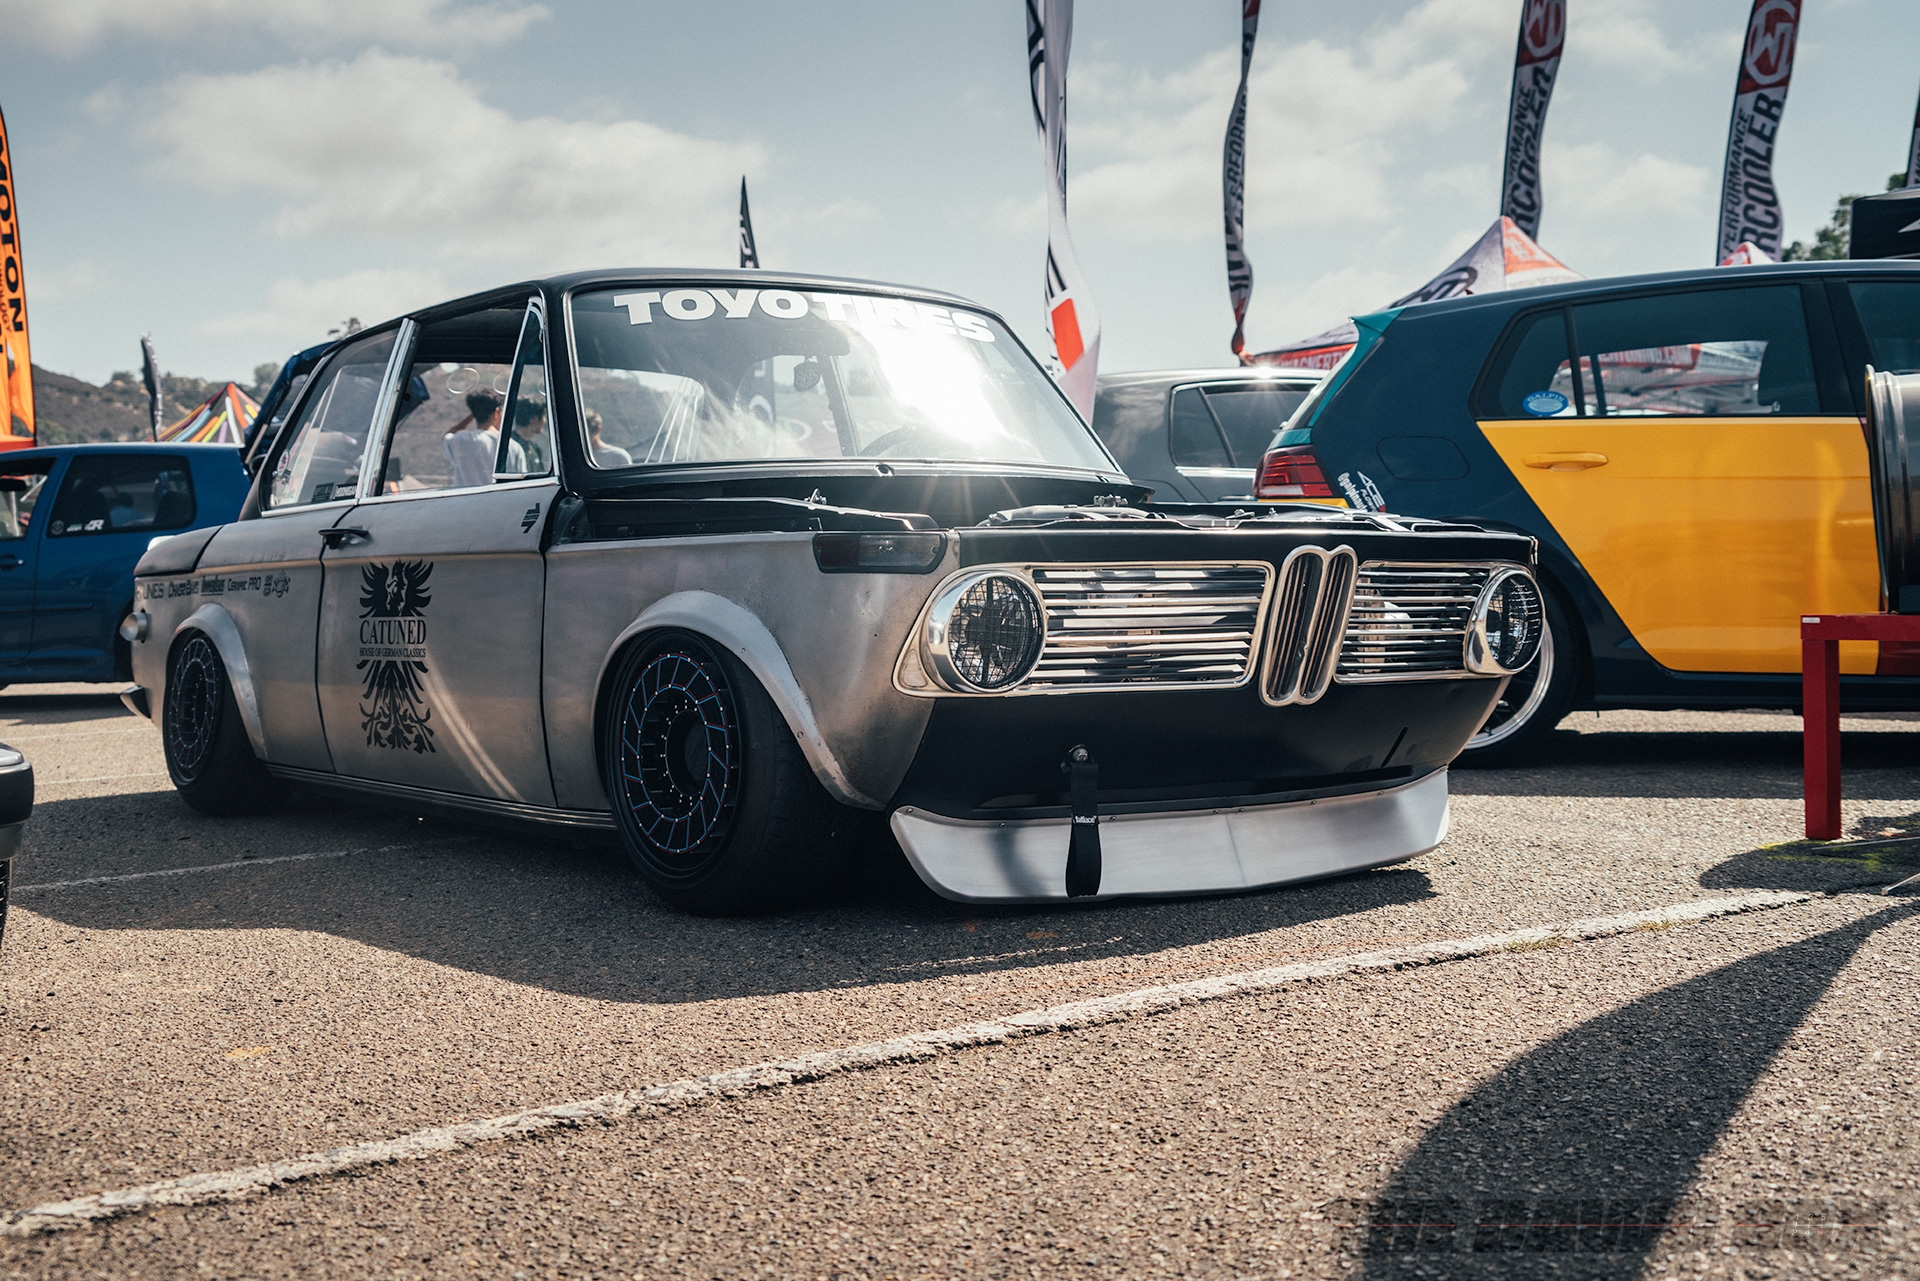 Silver CATuned BMW 2002 known as Ratrod02